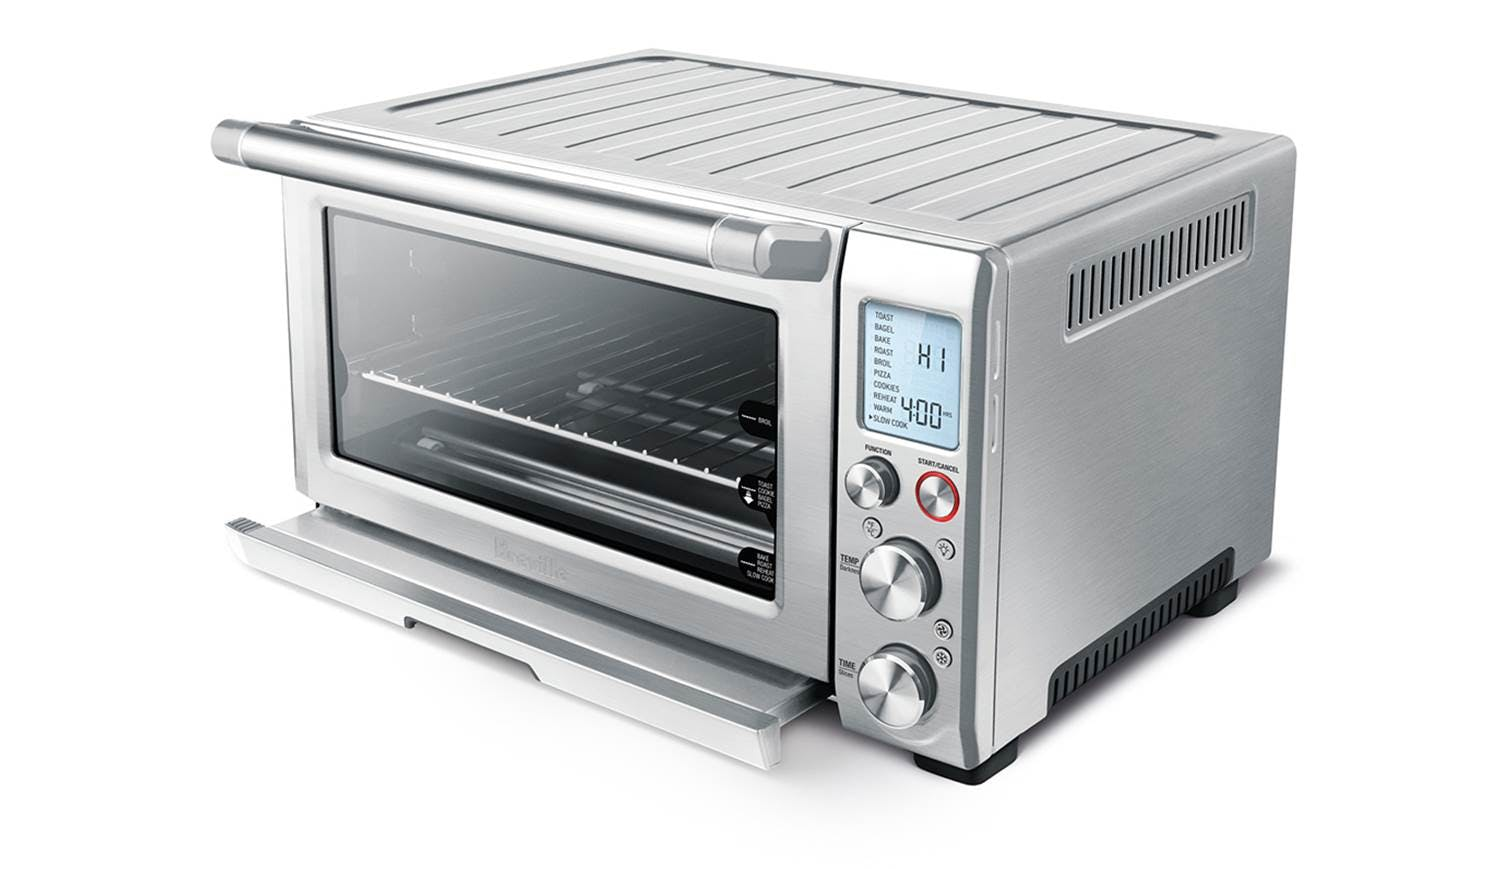 oven harvey toaster breville ovens smart compare cooking singapore kitchen appliances norman pro wishlist reviews